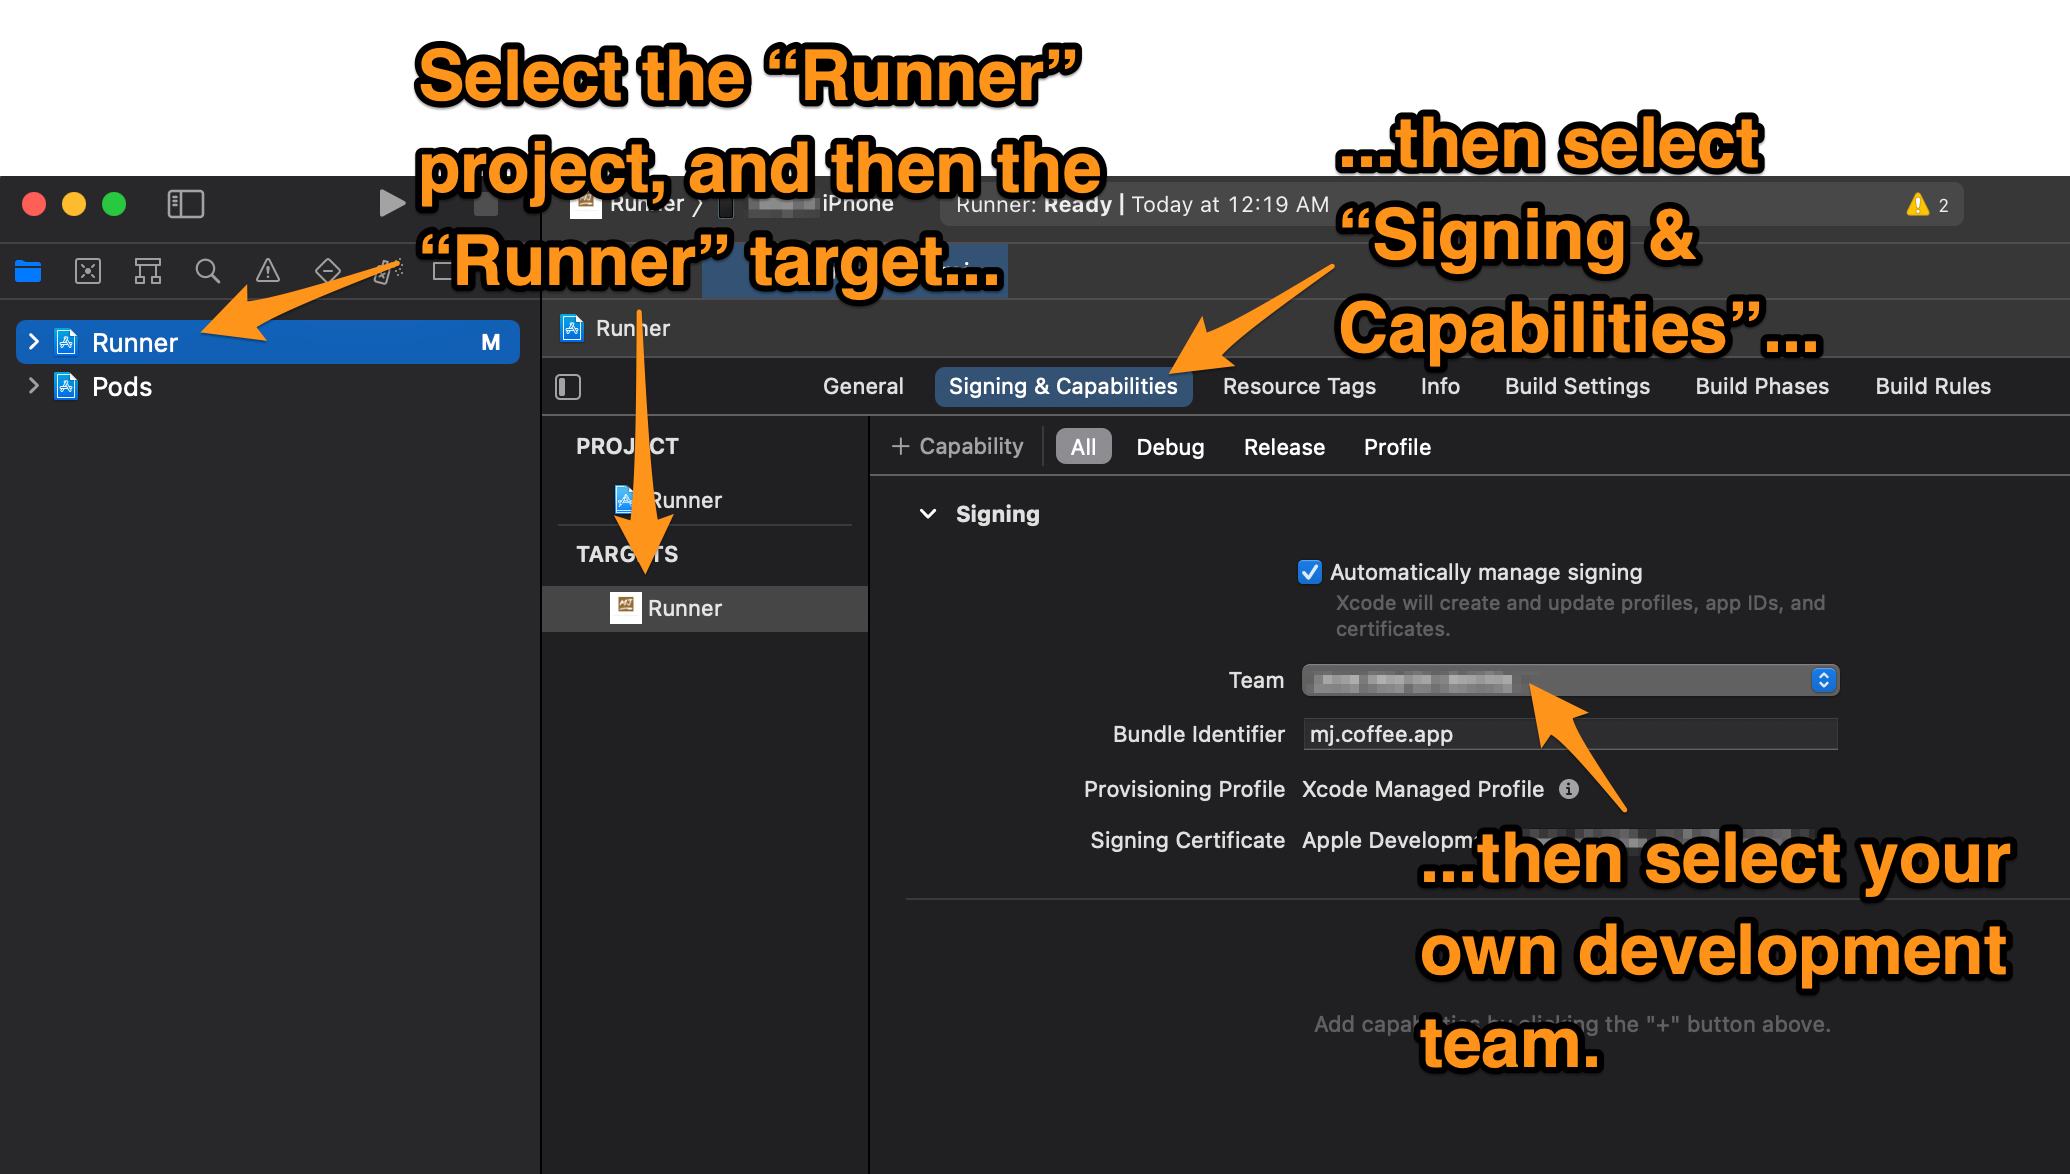 """Screenshot of Xcode. The reader is instructed to select the """"Runner"""" project and then the """"Runner"""" target, then select """"Signing and Capabilities"""", and finally select their development team."""